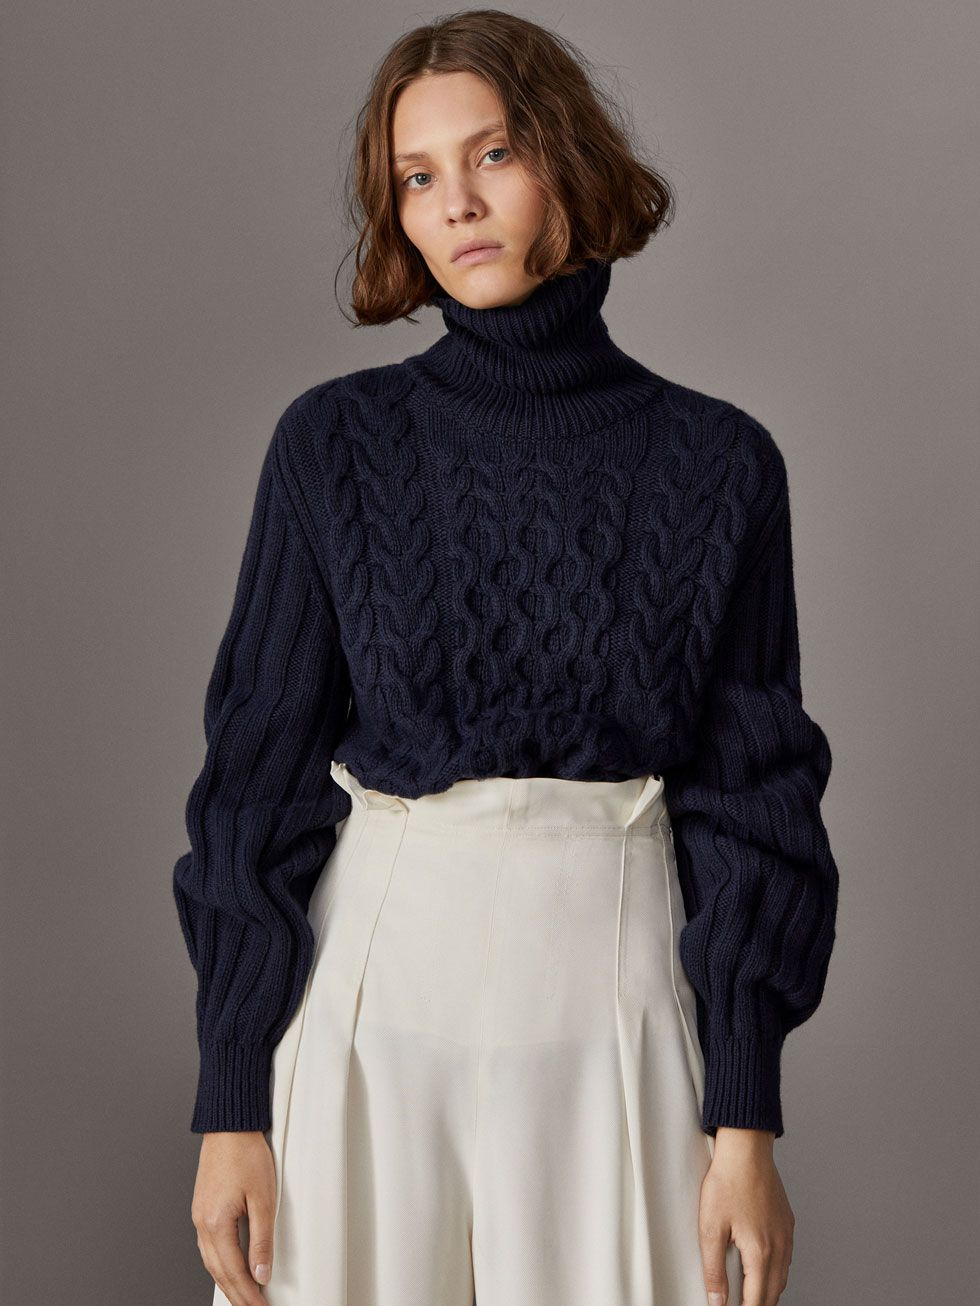 WOOLCASHMERE CABLE KNIT SWEATER WITH BALLOON SLEEVES